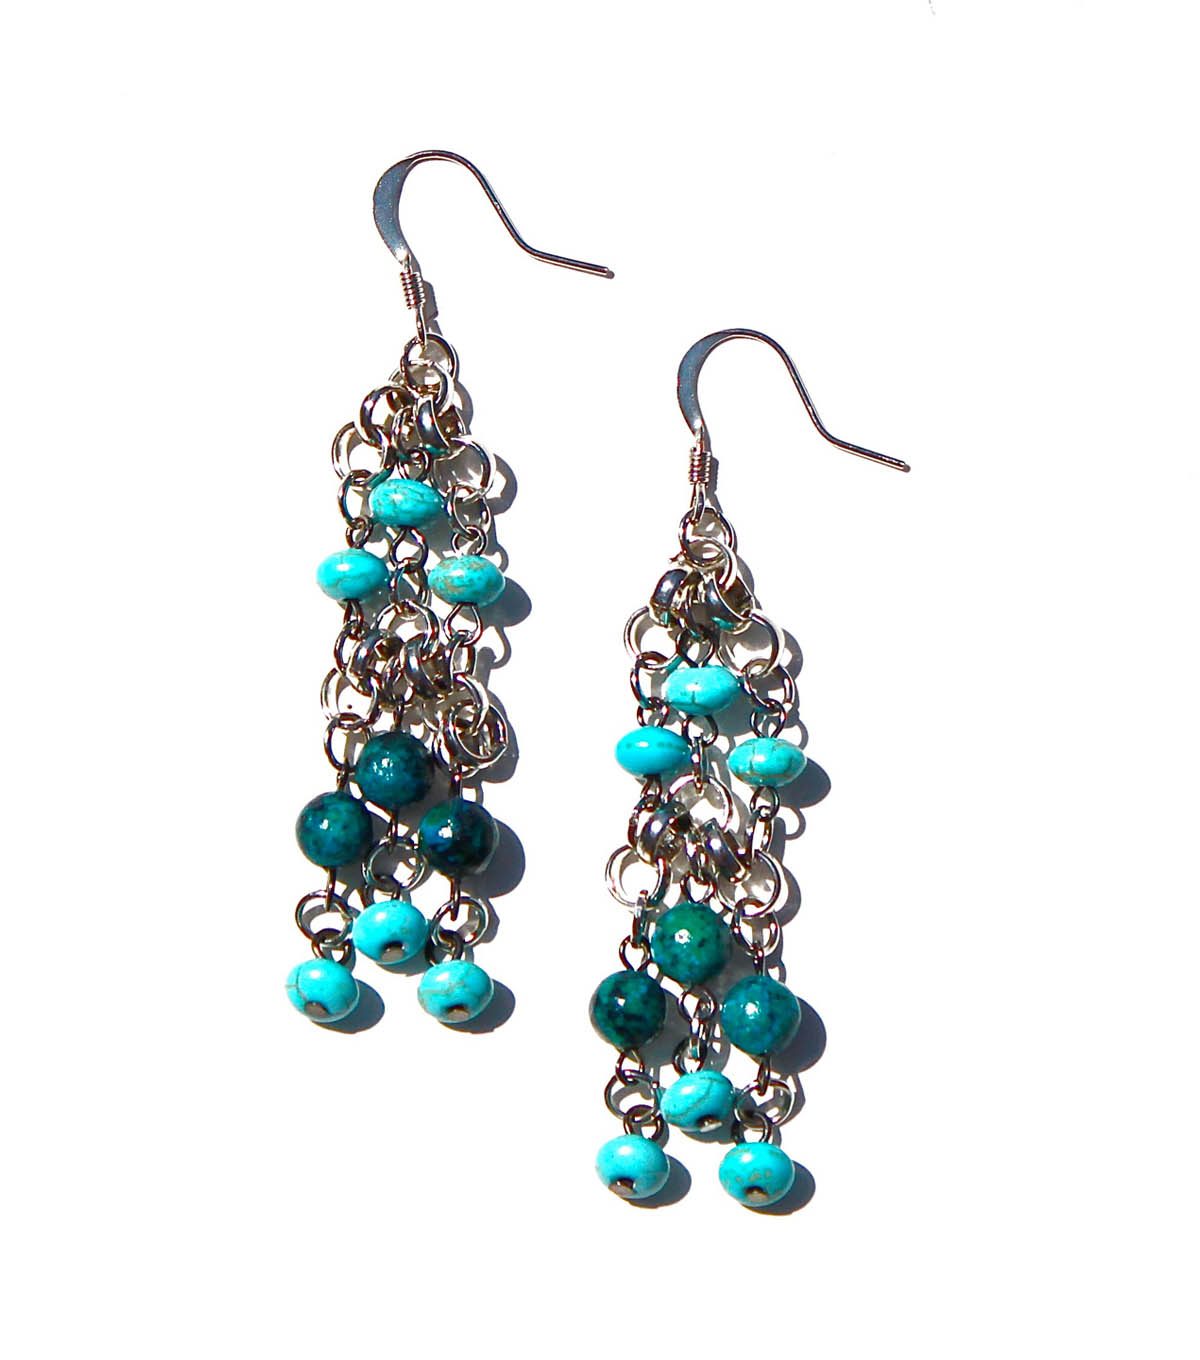 Rhapsody Earrings